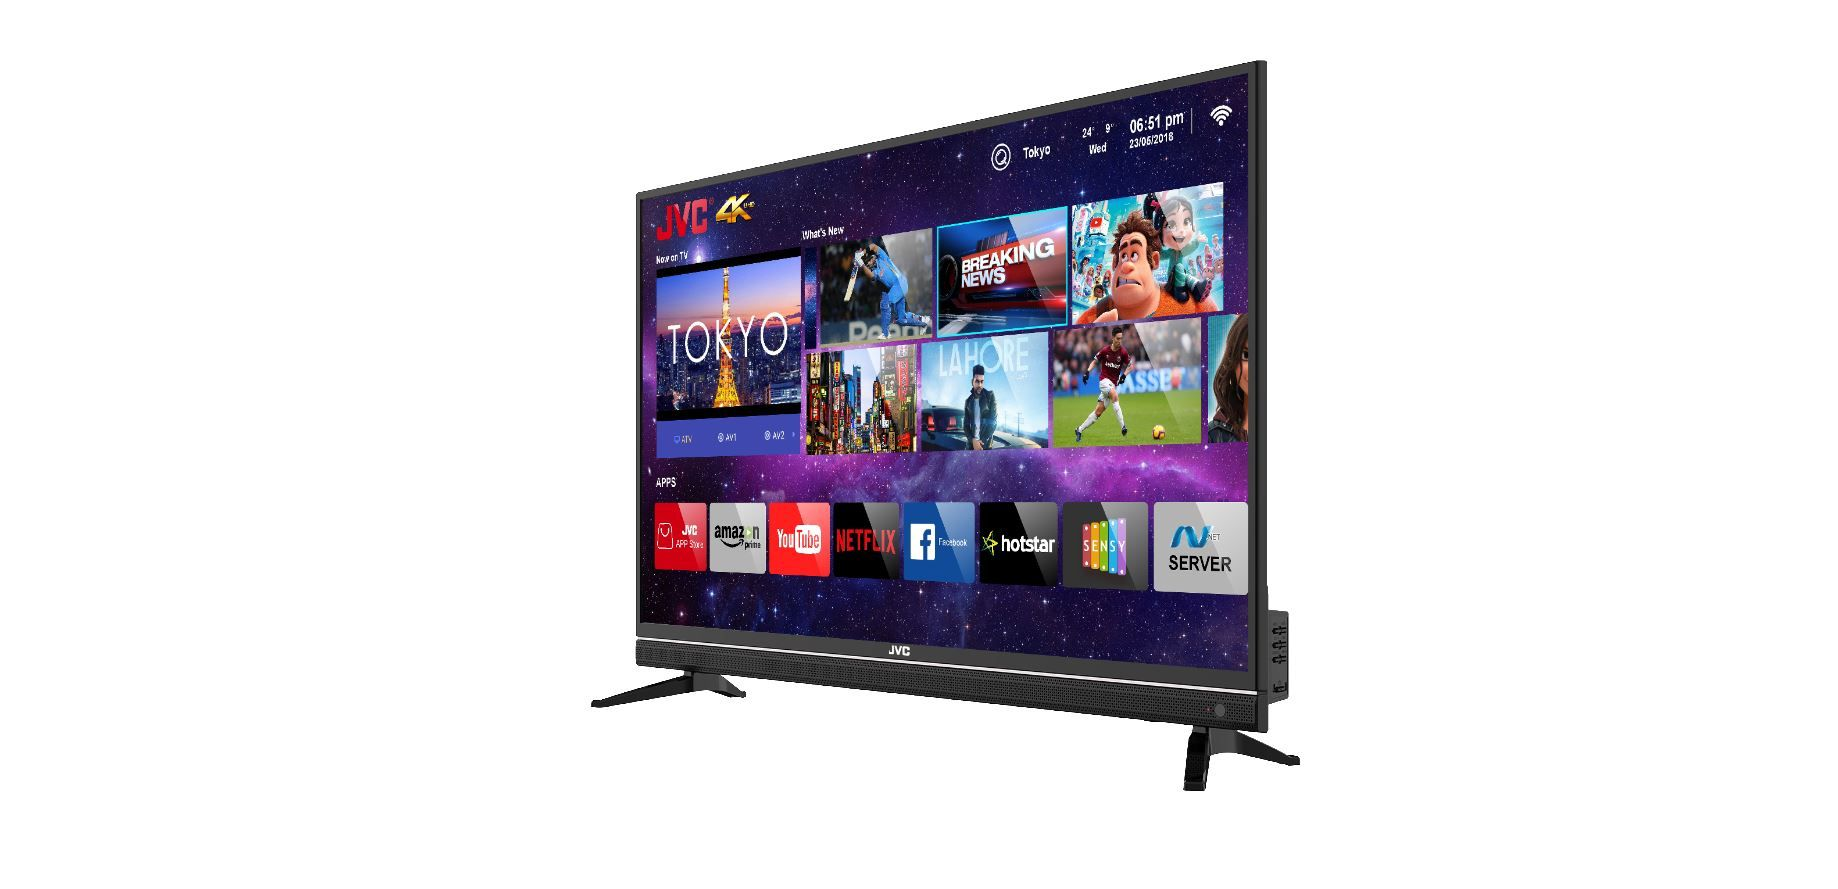 JVC Launches 43-inch 4K Smart TV For Rs 24,999